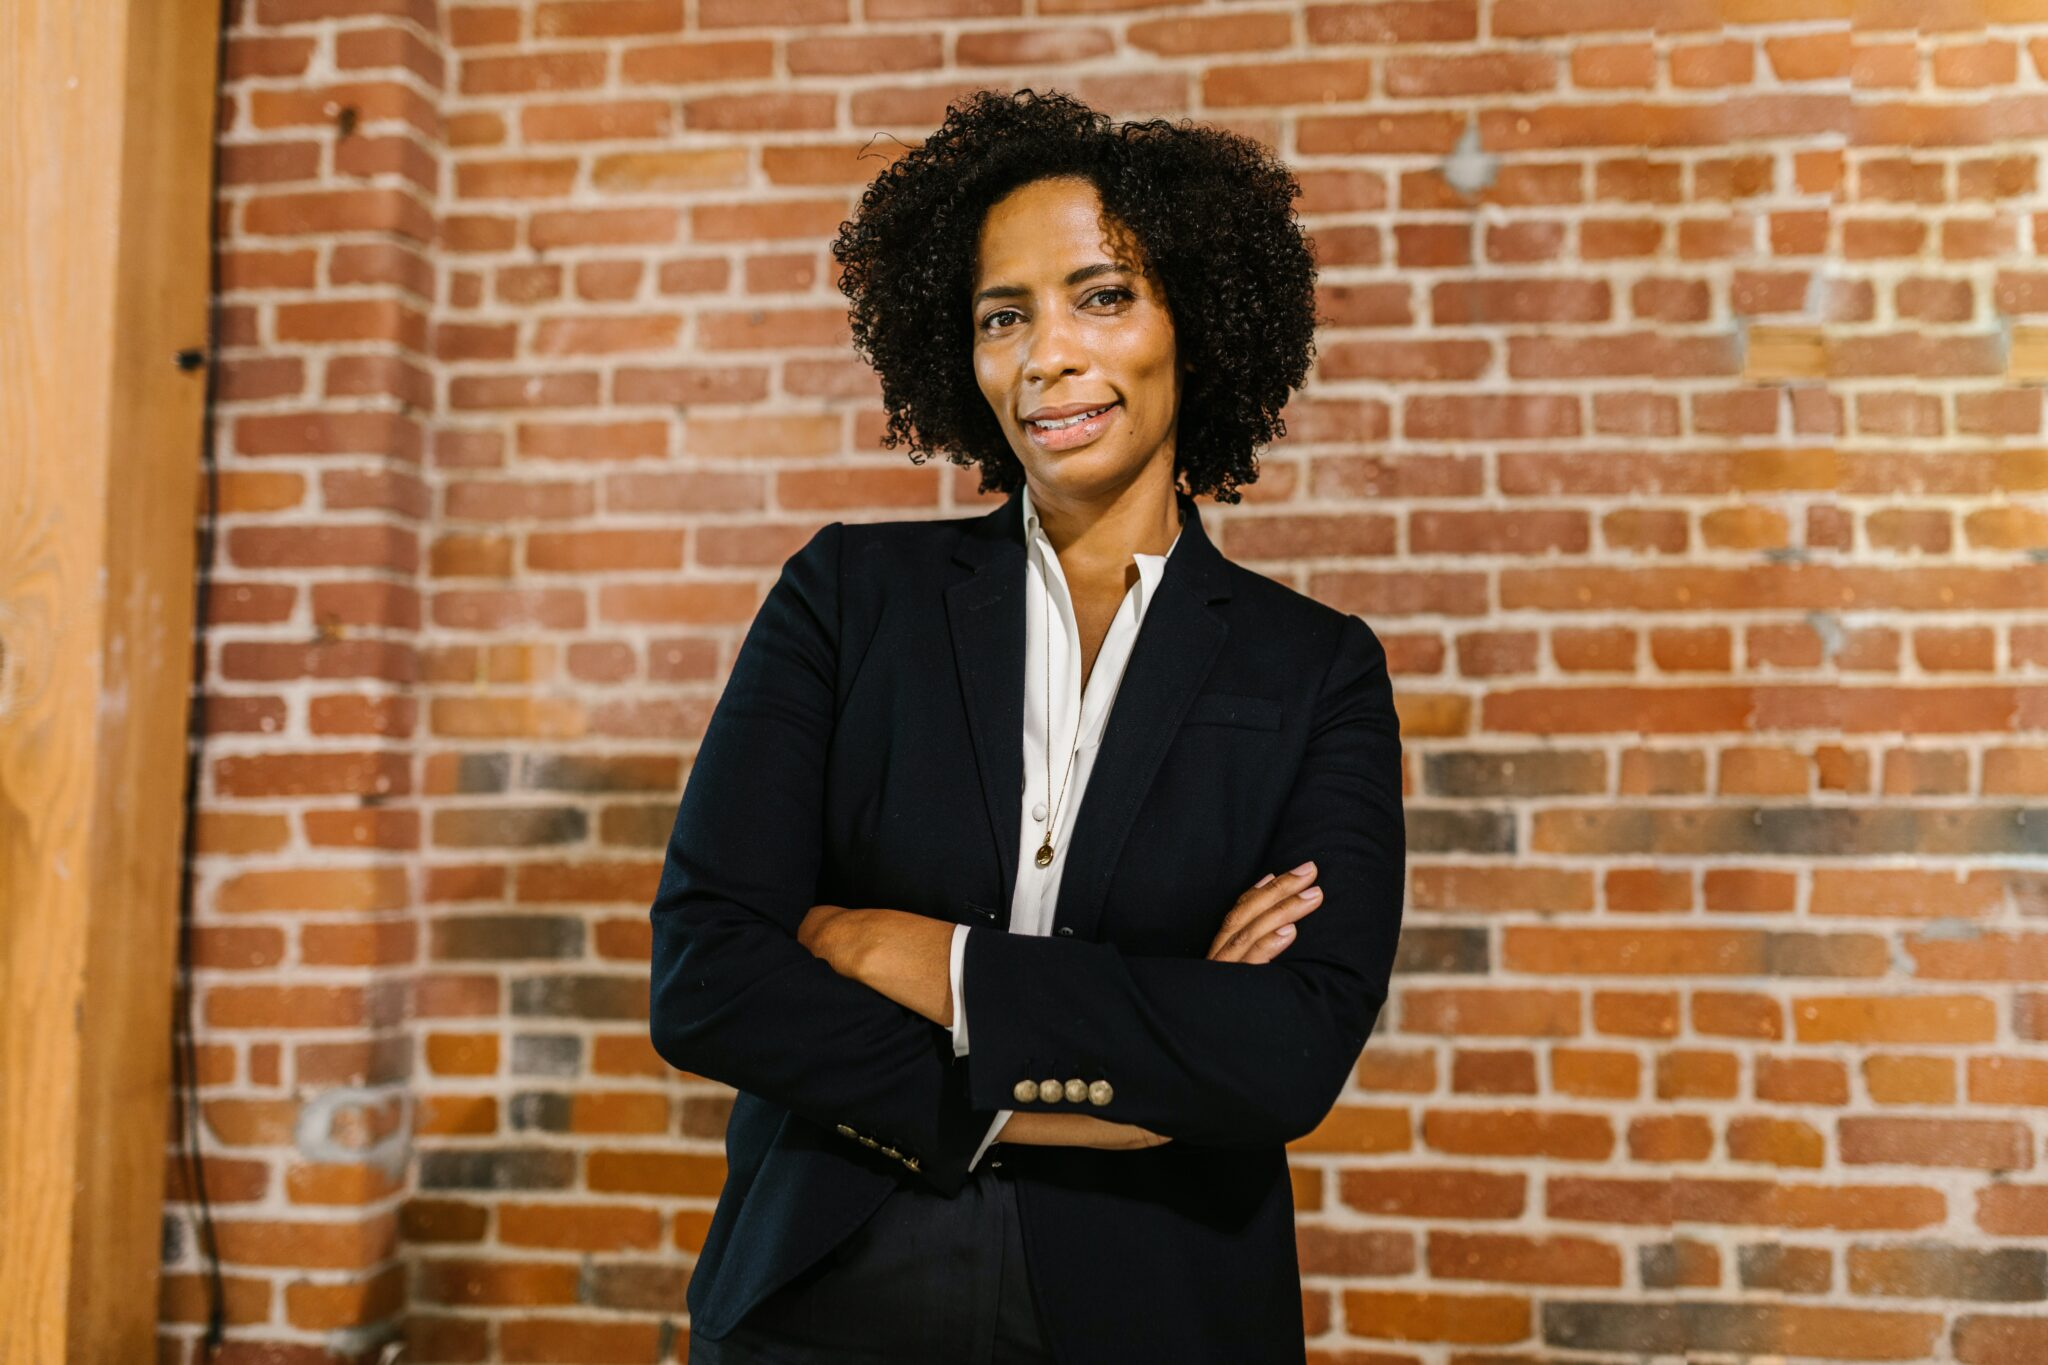 photo of a confident professional woman looking at the camera